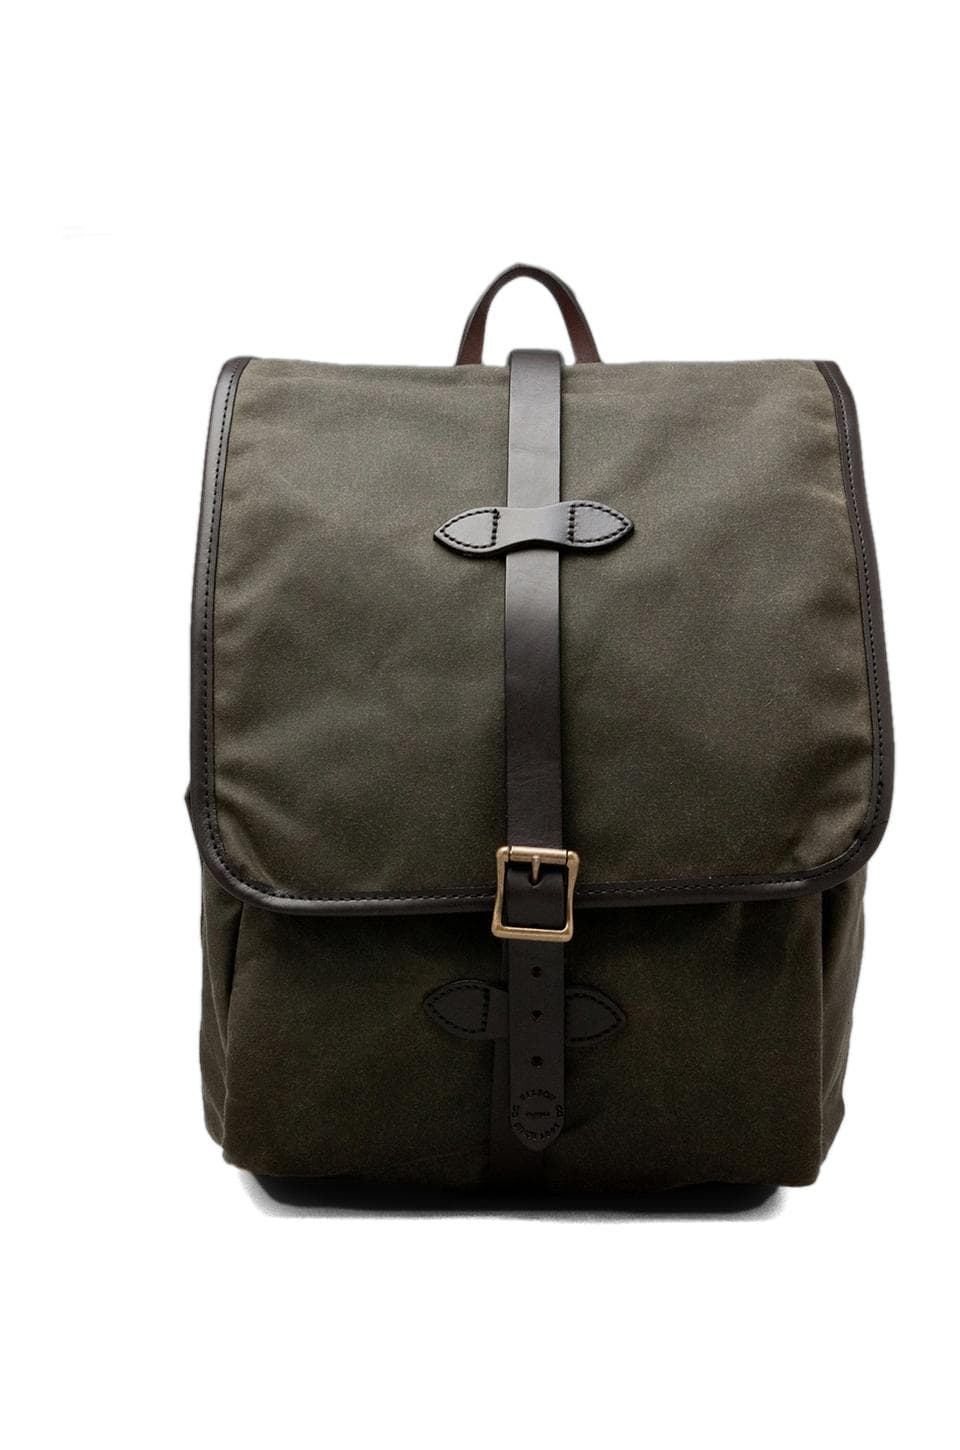 Filson Tin Cloth Backpack in Otter Green